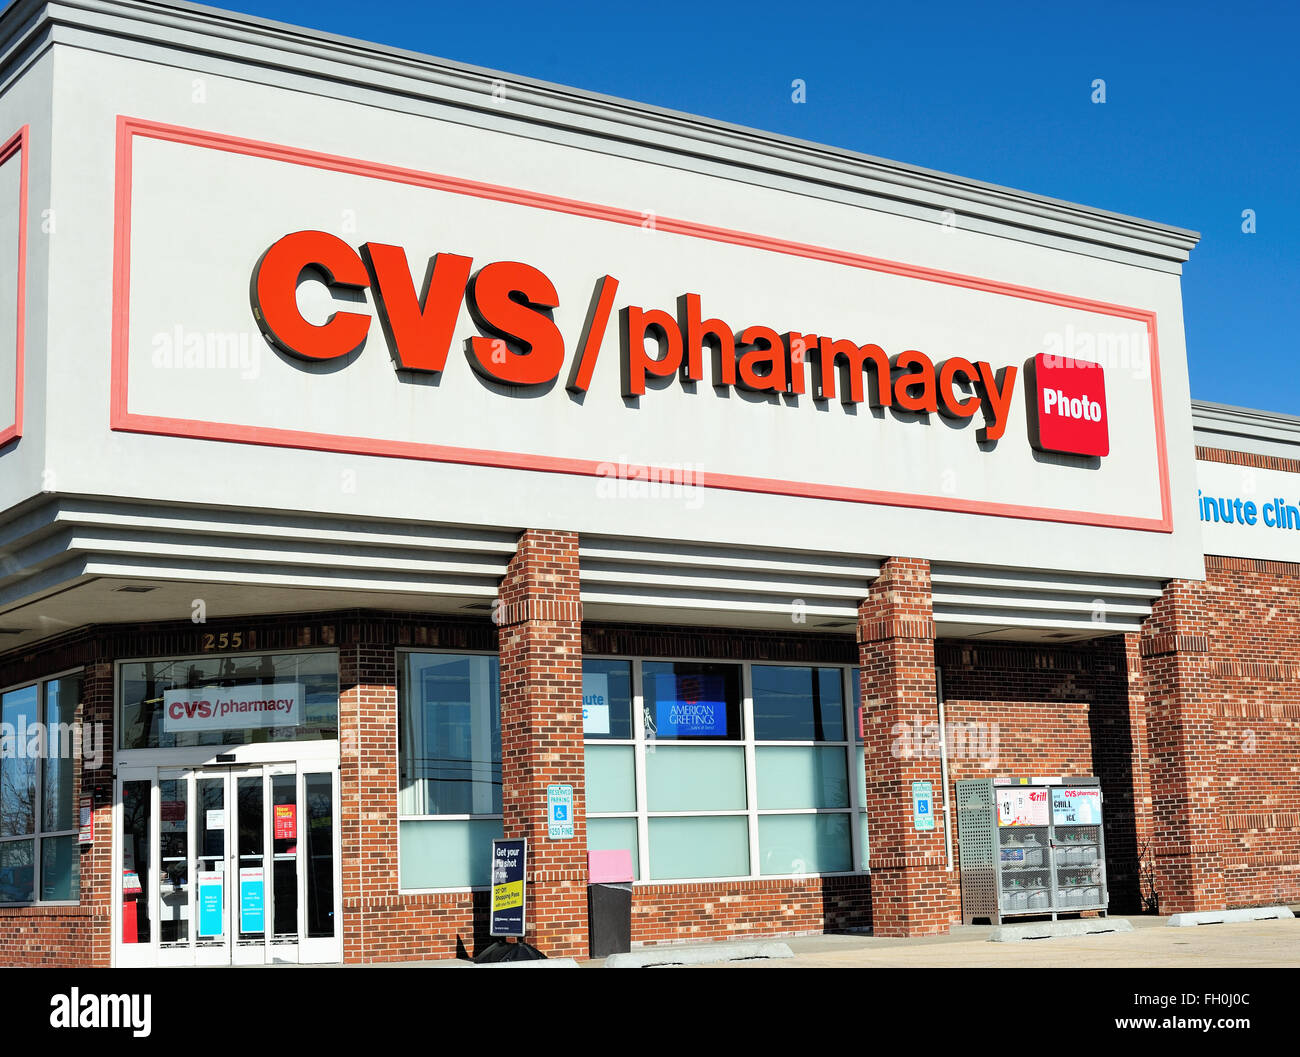 A CVS Pharmacy (drug store, chemist) and franchise found throughout the United States. South Elgin, Illinois, USA. - Stock Image